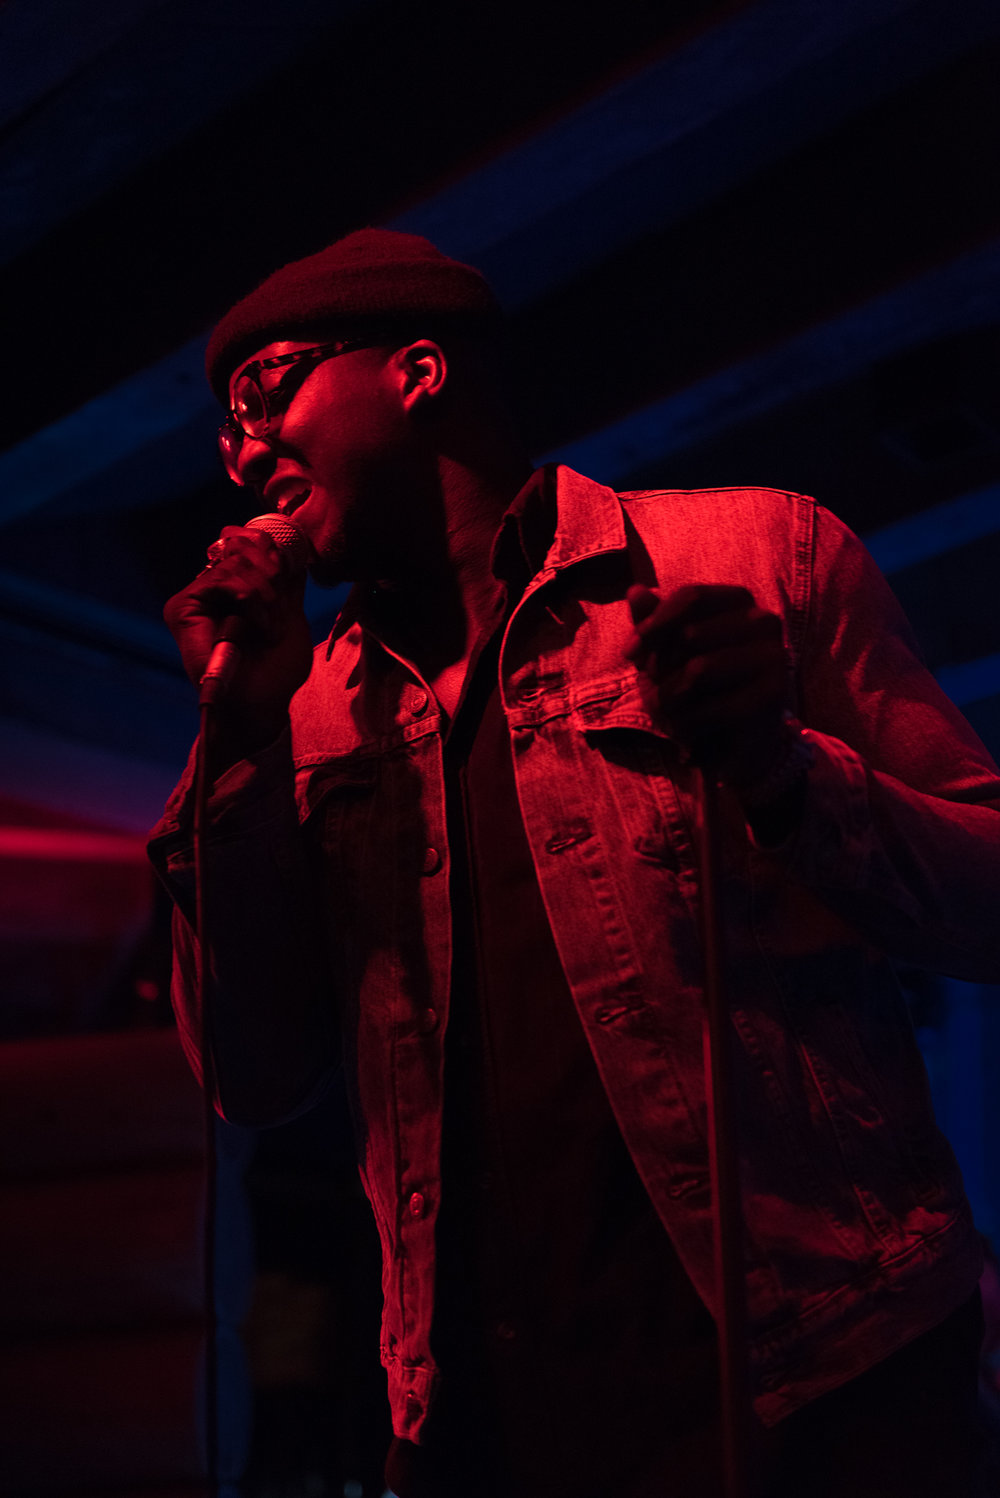 portland-music-photographer-dave-franz-jacob-banks-doug-fir-1.jpg